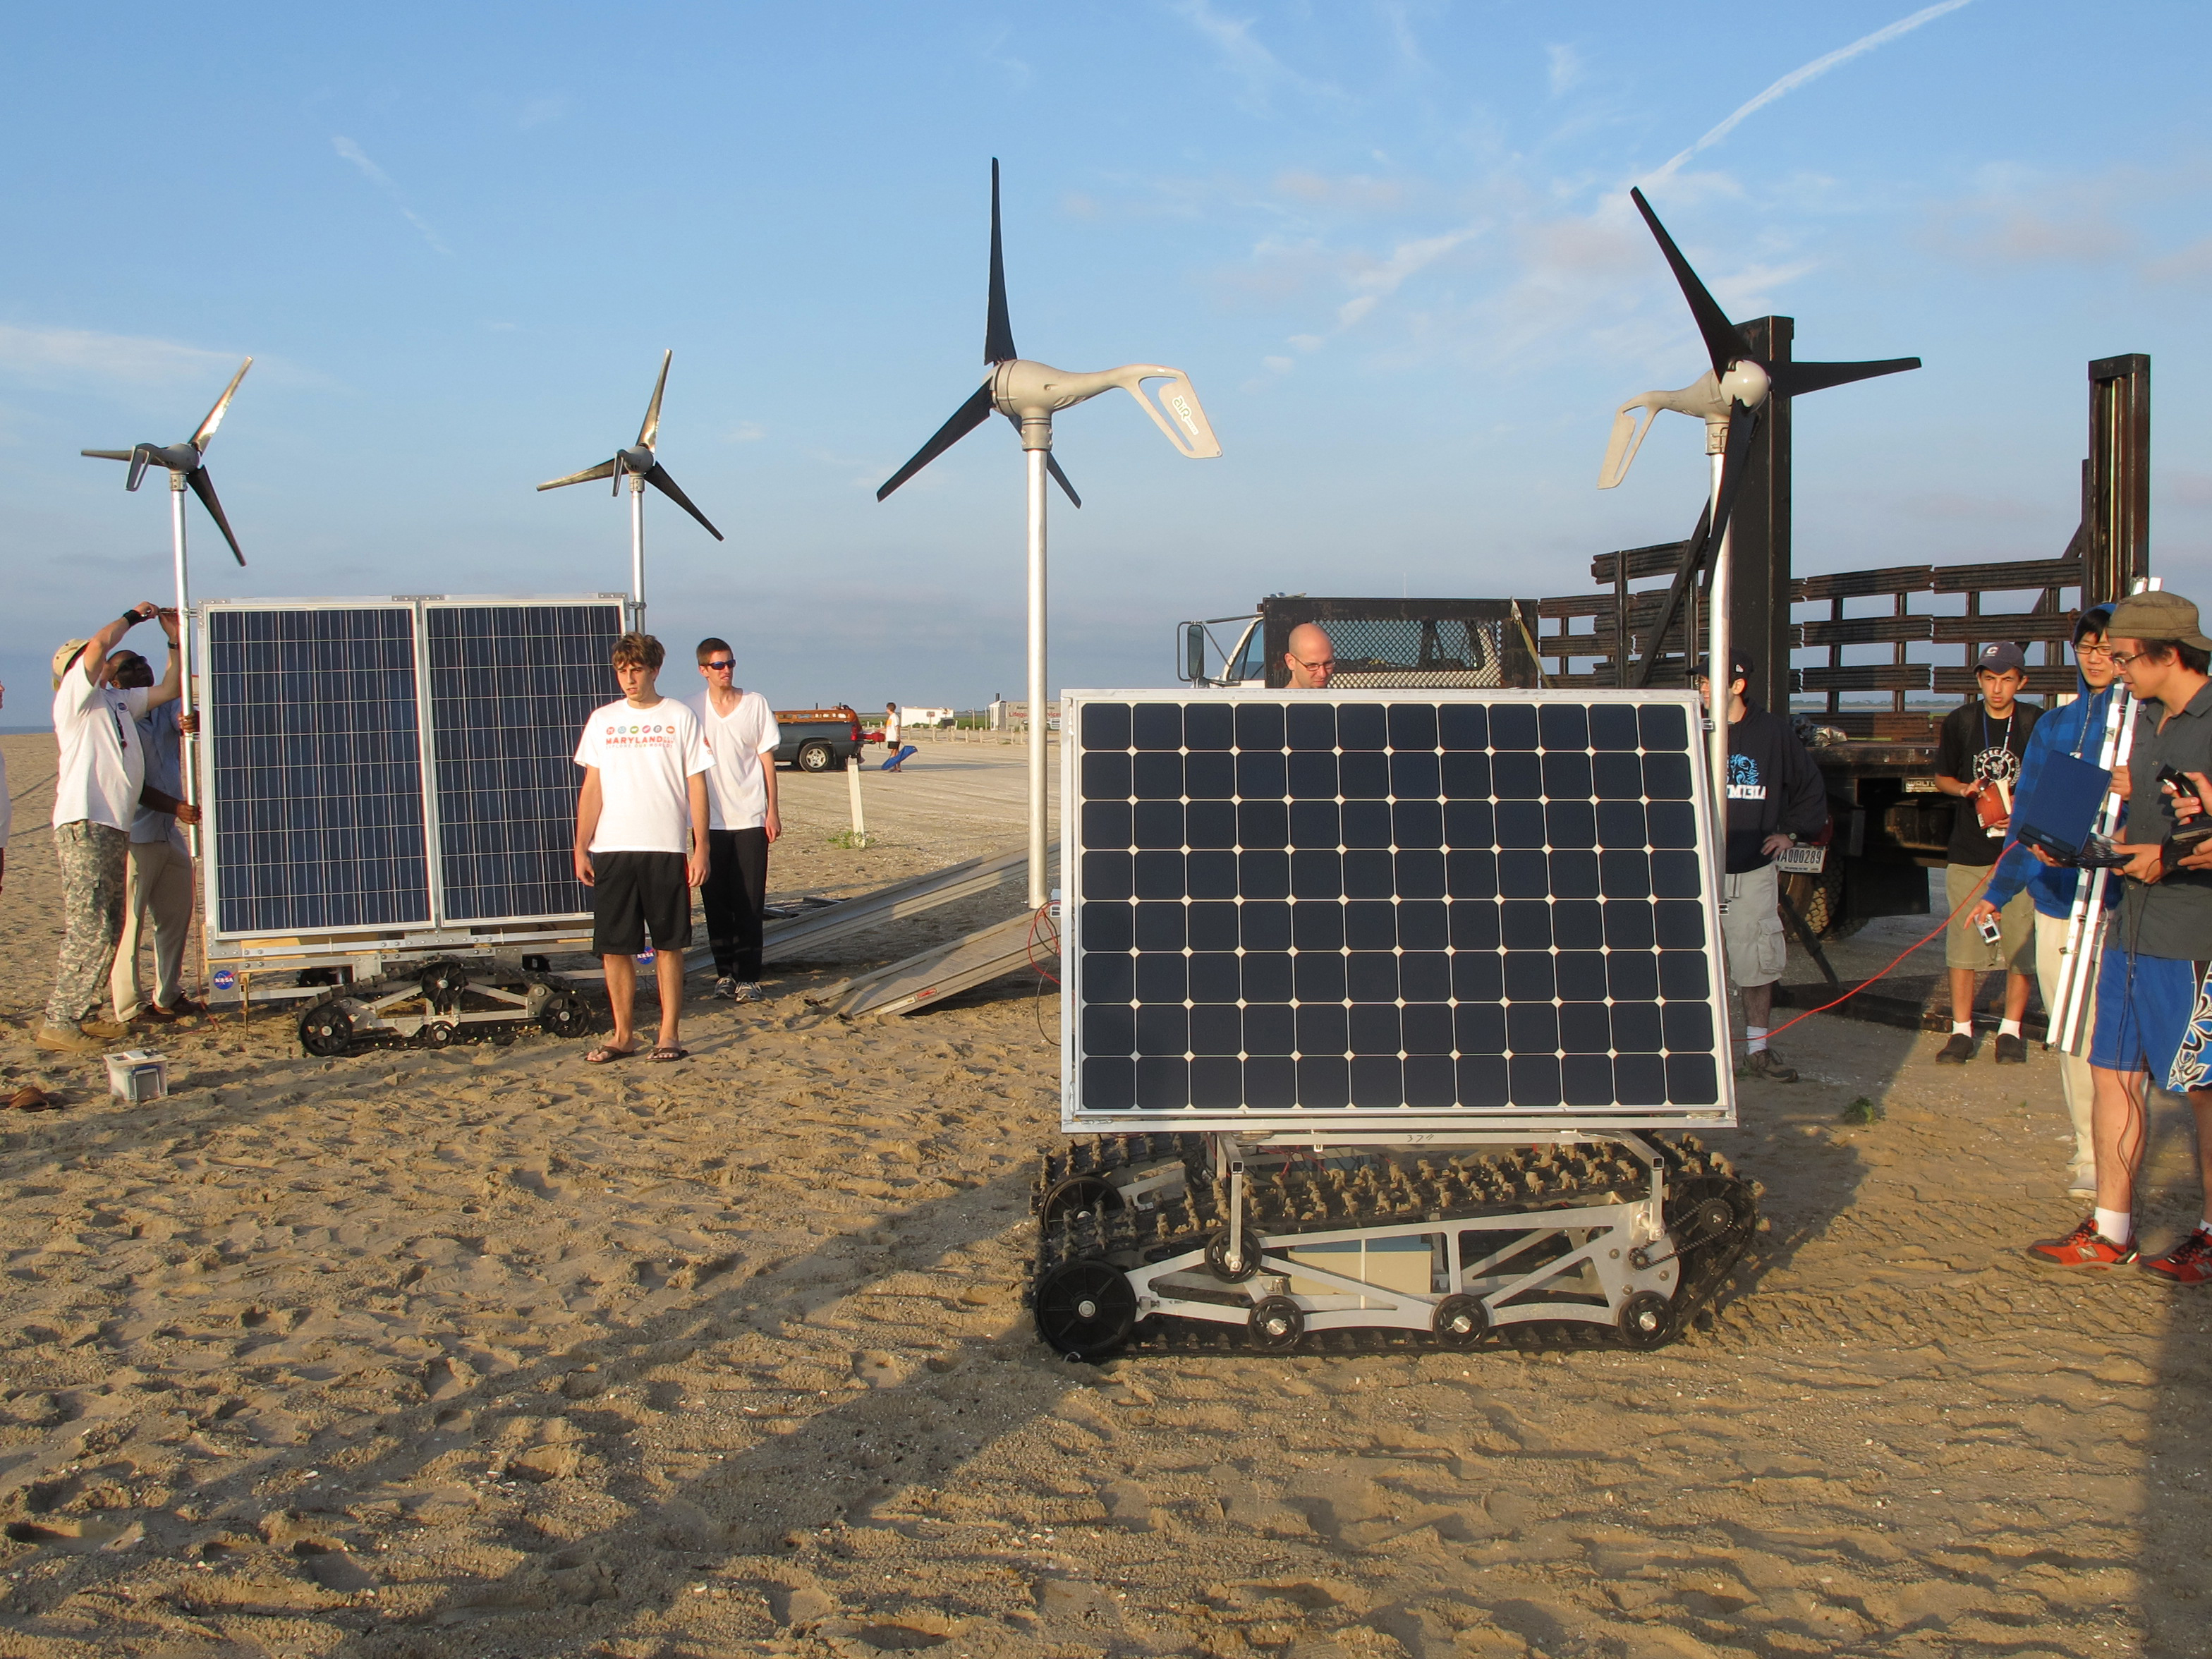 Students from a NASA Goddard summer engineering boot camp test two prototypes of GROVER at a beach in Asseteague Island, Md., in 2011. The prototype in front is similar to the one NASA will test in Greenland in May 2013. Credit: NASA/Michael Comberiate